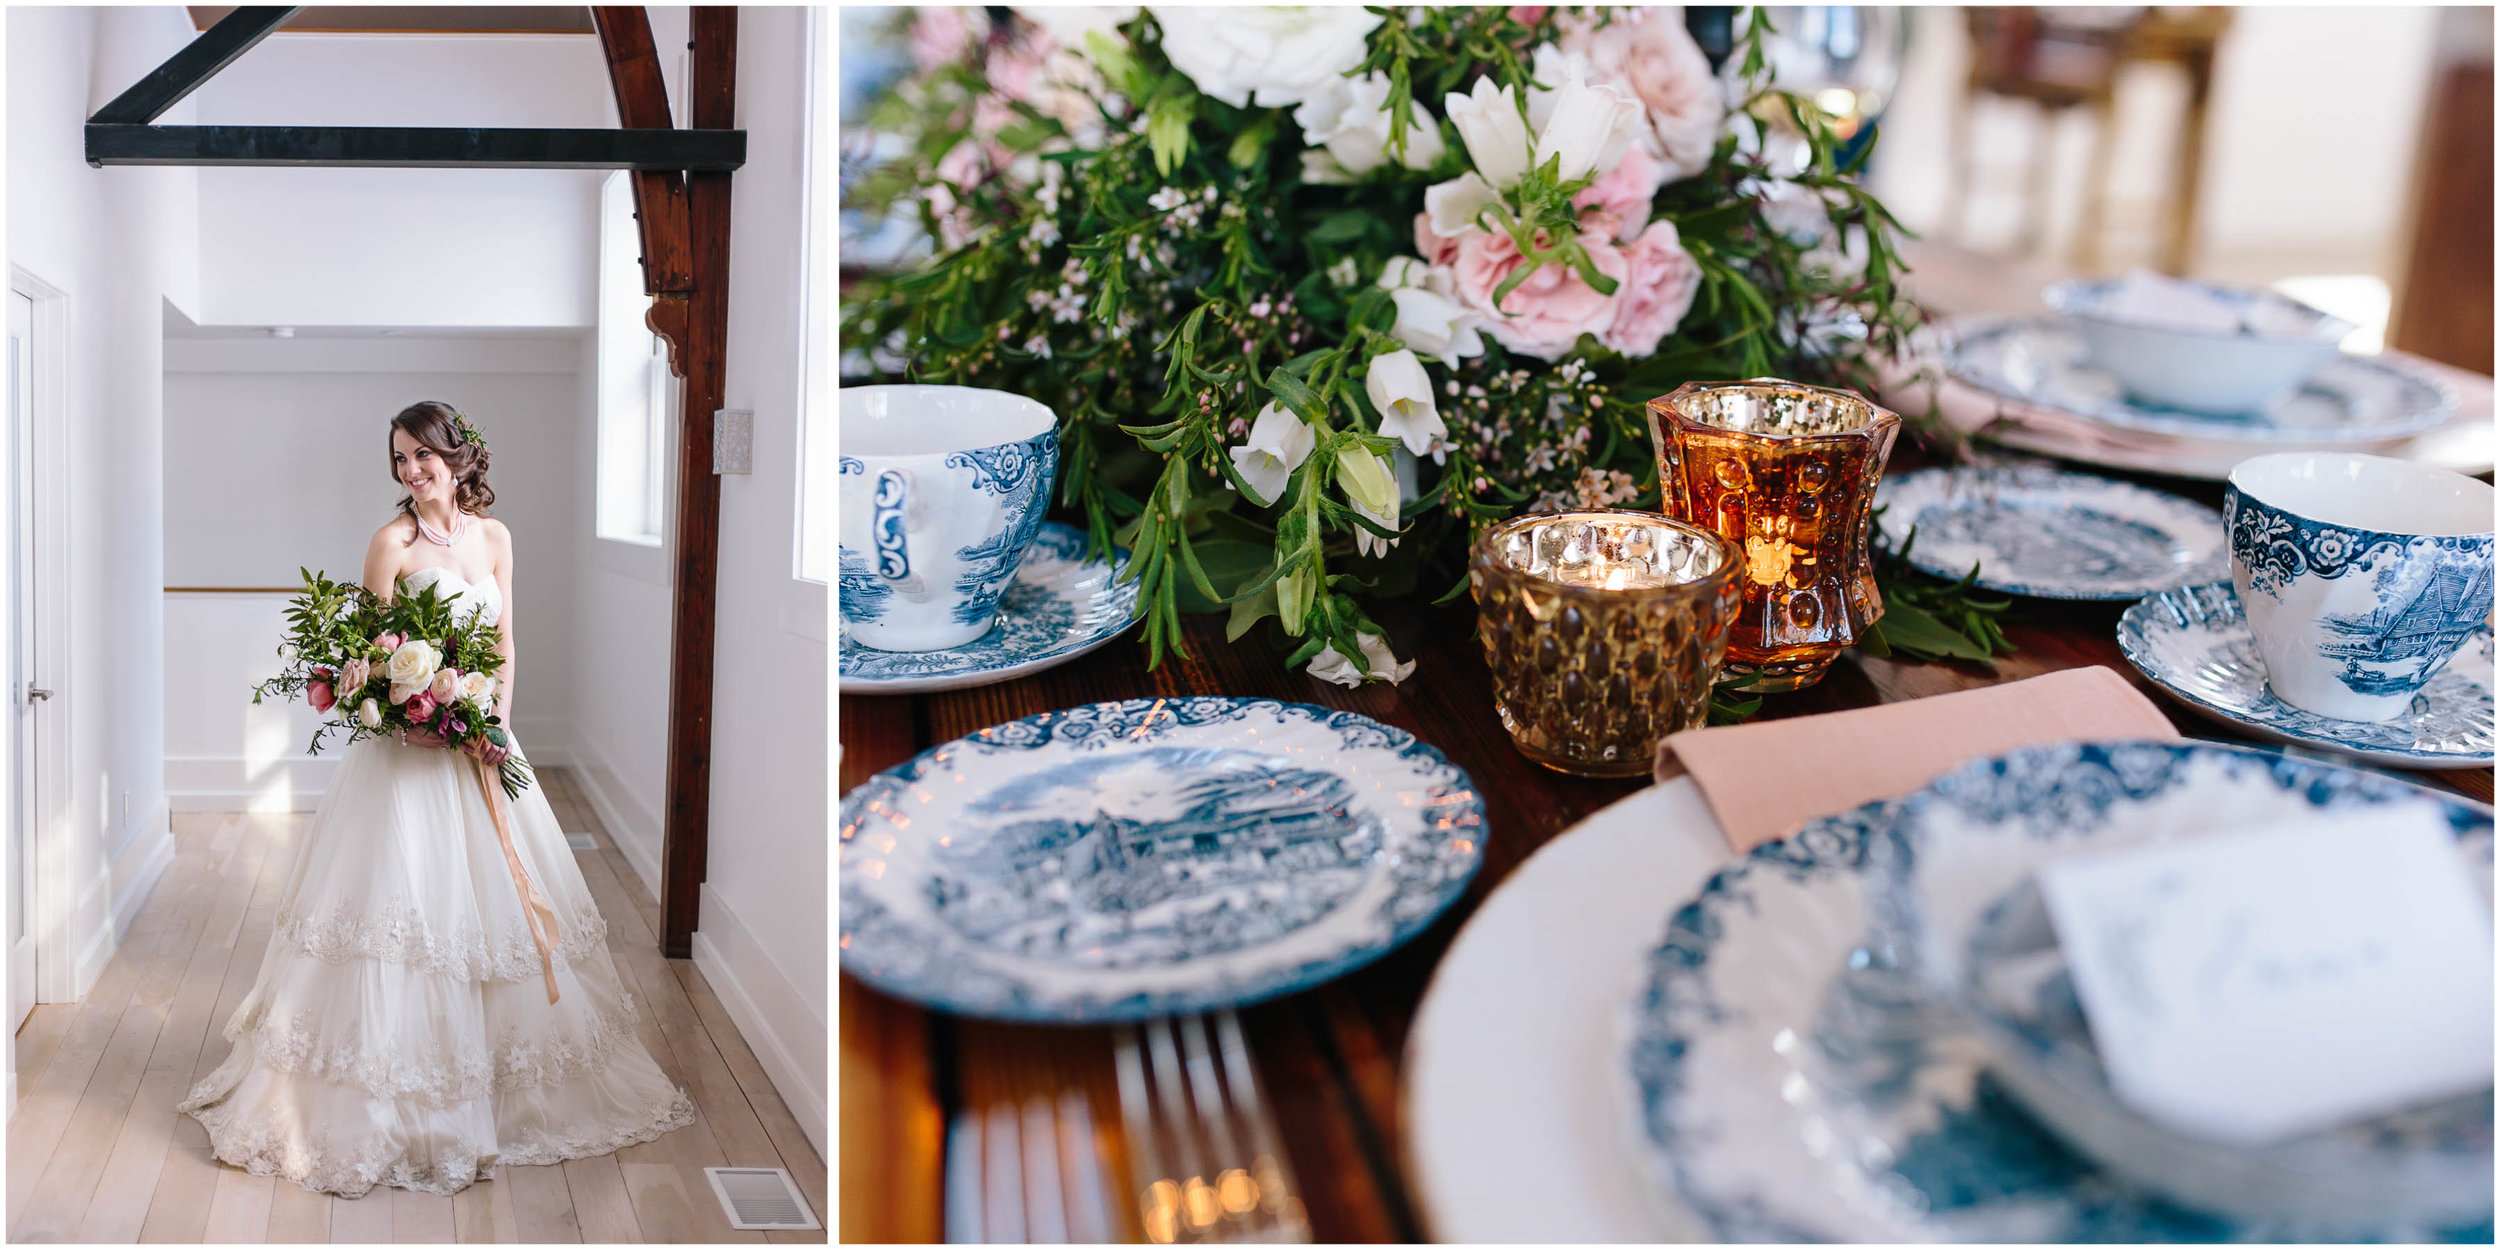 Intimate and romantic styled wedding photography in Lee, Massachusetts in the Berkshires - bride and tablescape